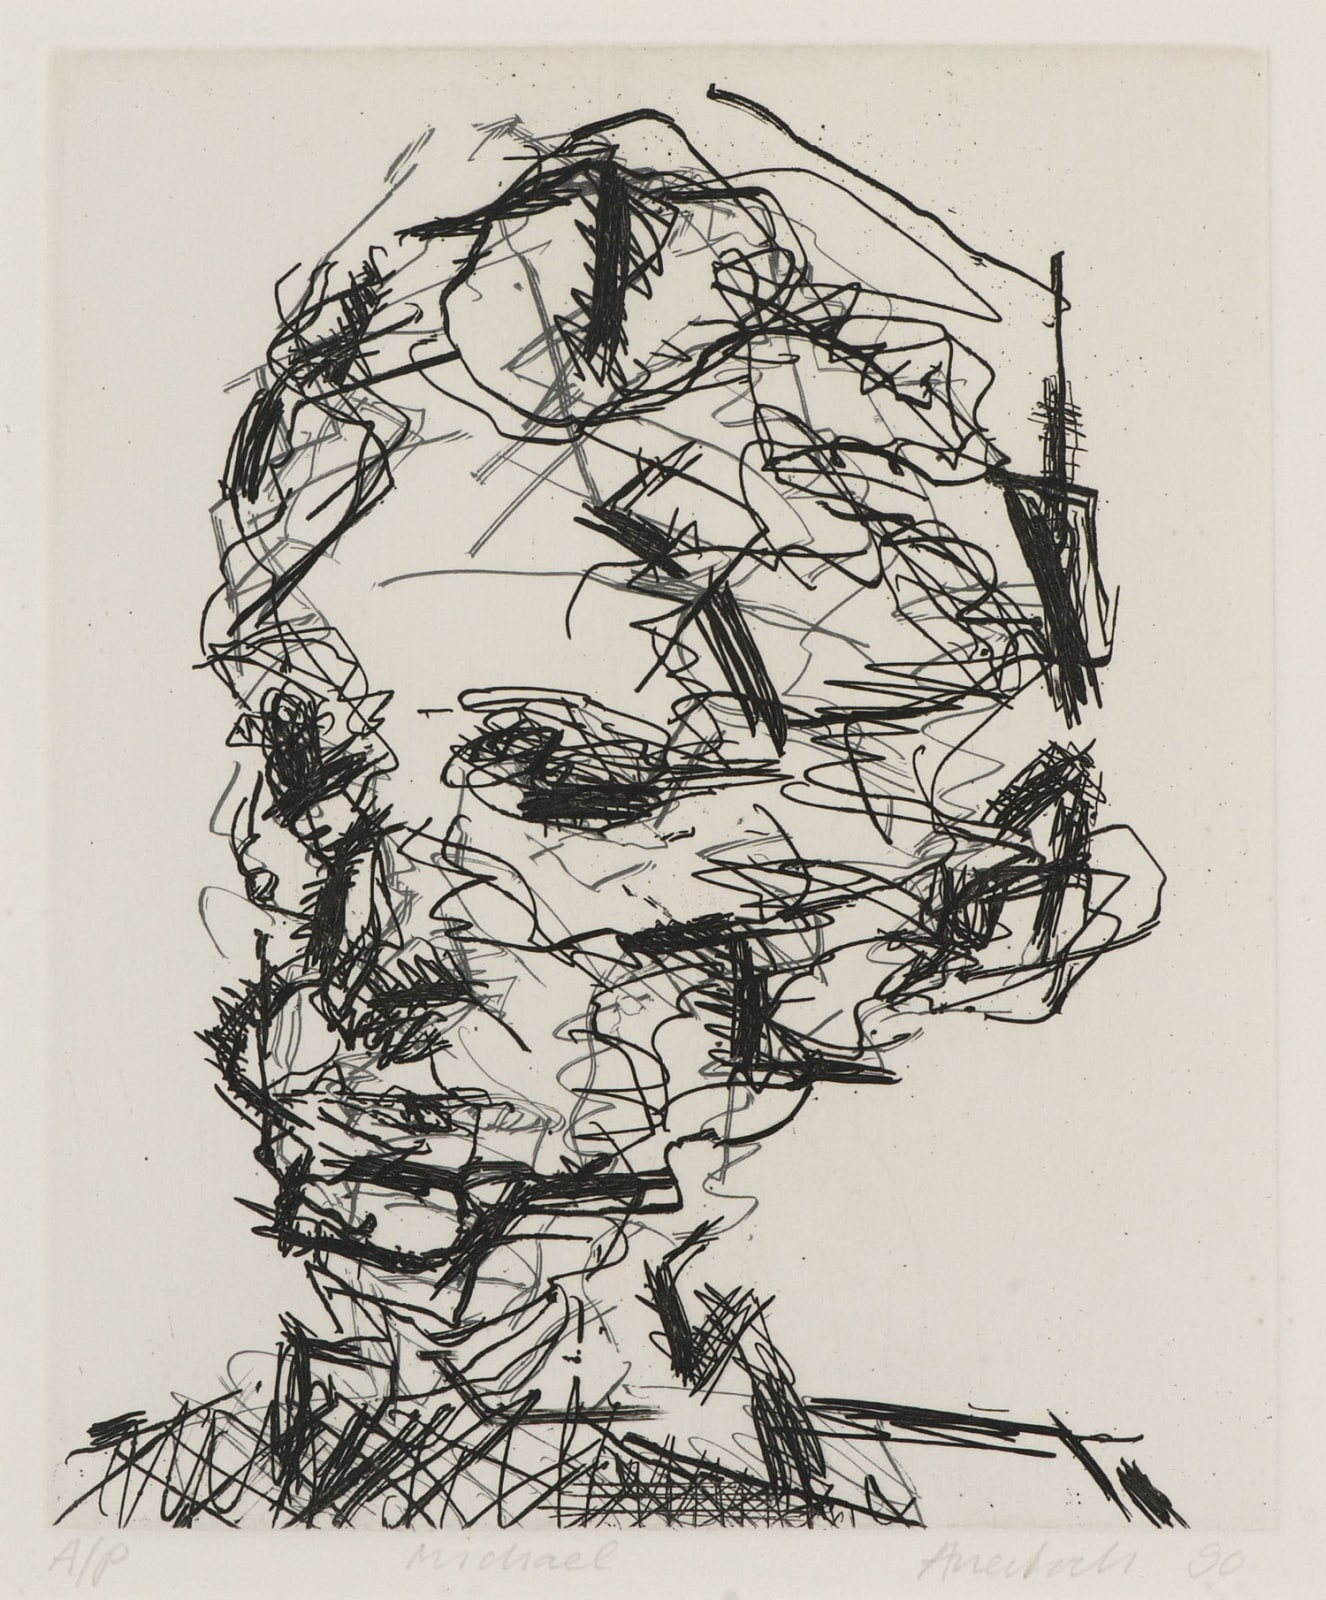 Frank Auerbach (1931-) Michael 1989 Etching, printed on Somerset white paper Artist's proof outside the published edition of 50 20 x 16.5 cm Ben Uri Collection © Frank Auerbach, courtesy of Marlborough Fine Art To see and discover more about this artist click here